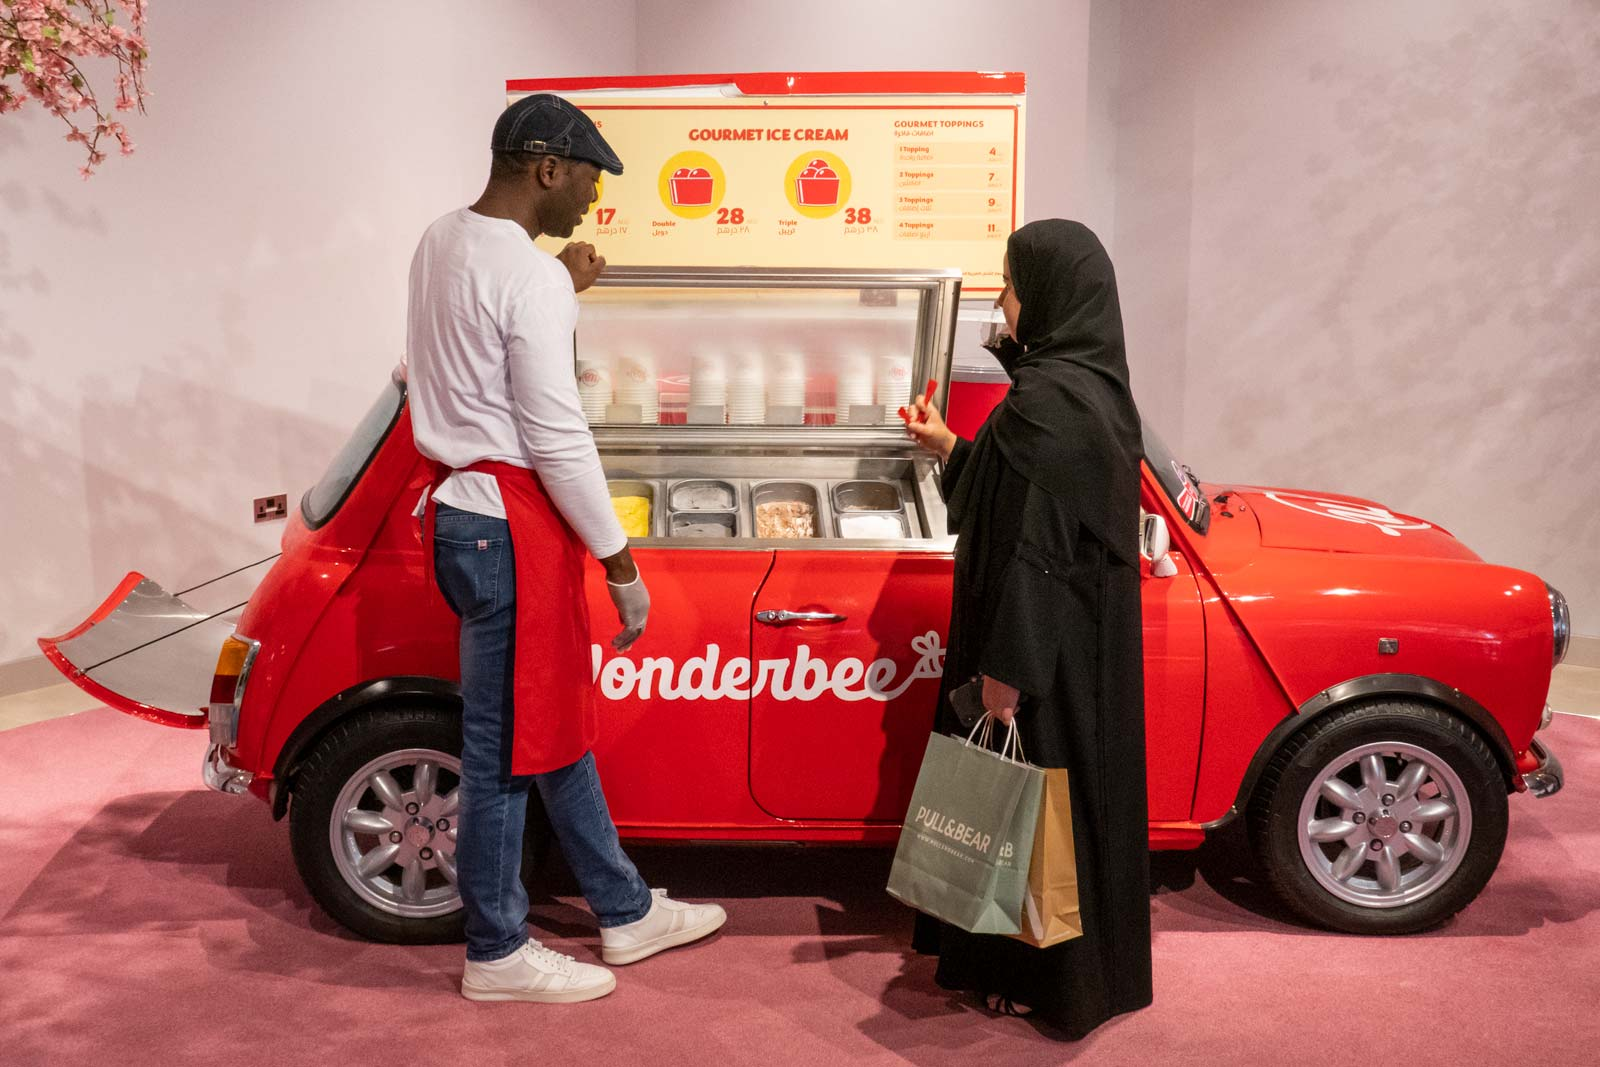 Wonderbee at The Galleria Abu Dhabi